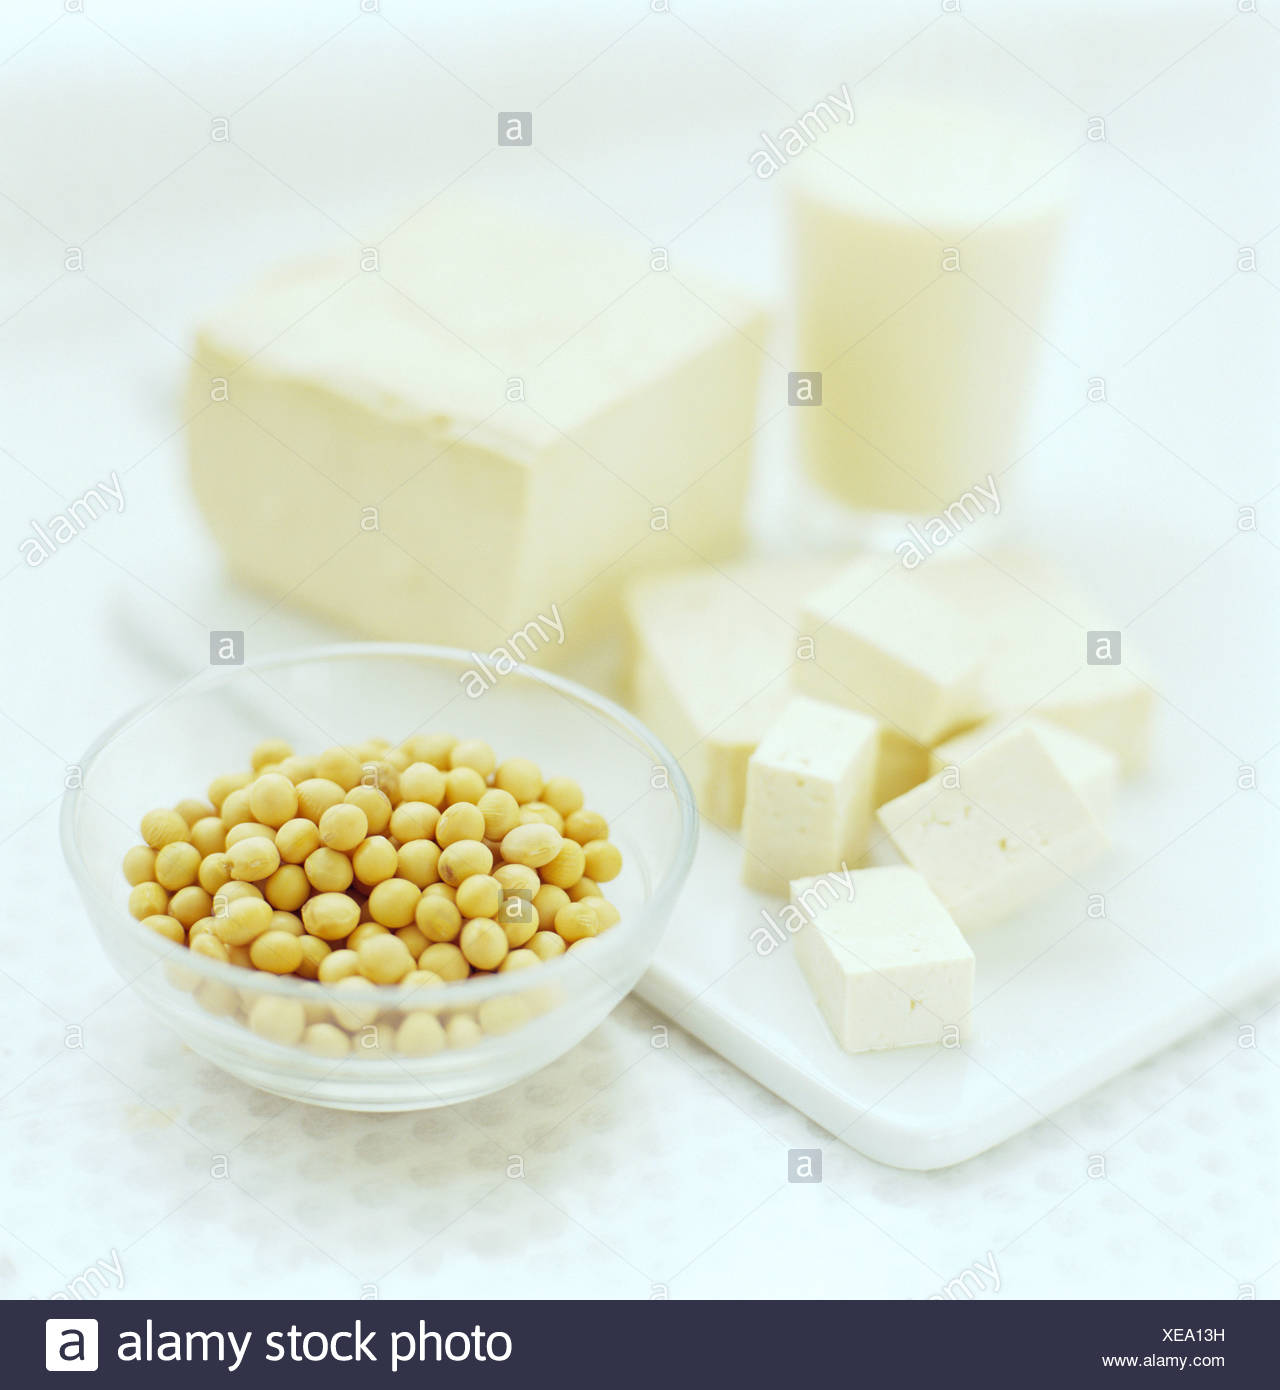 Soya bean products. Soya beans (Glycine max, lower right, in bowl) are one of the very best dietary sources of protein. - Stock Image